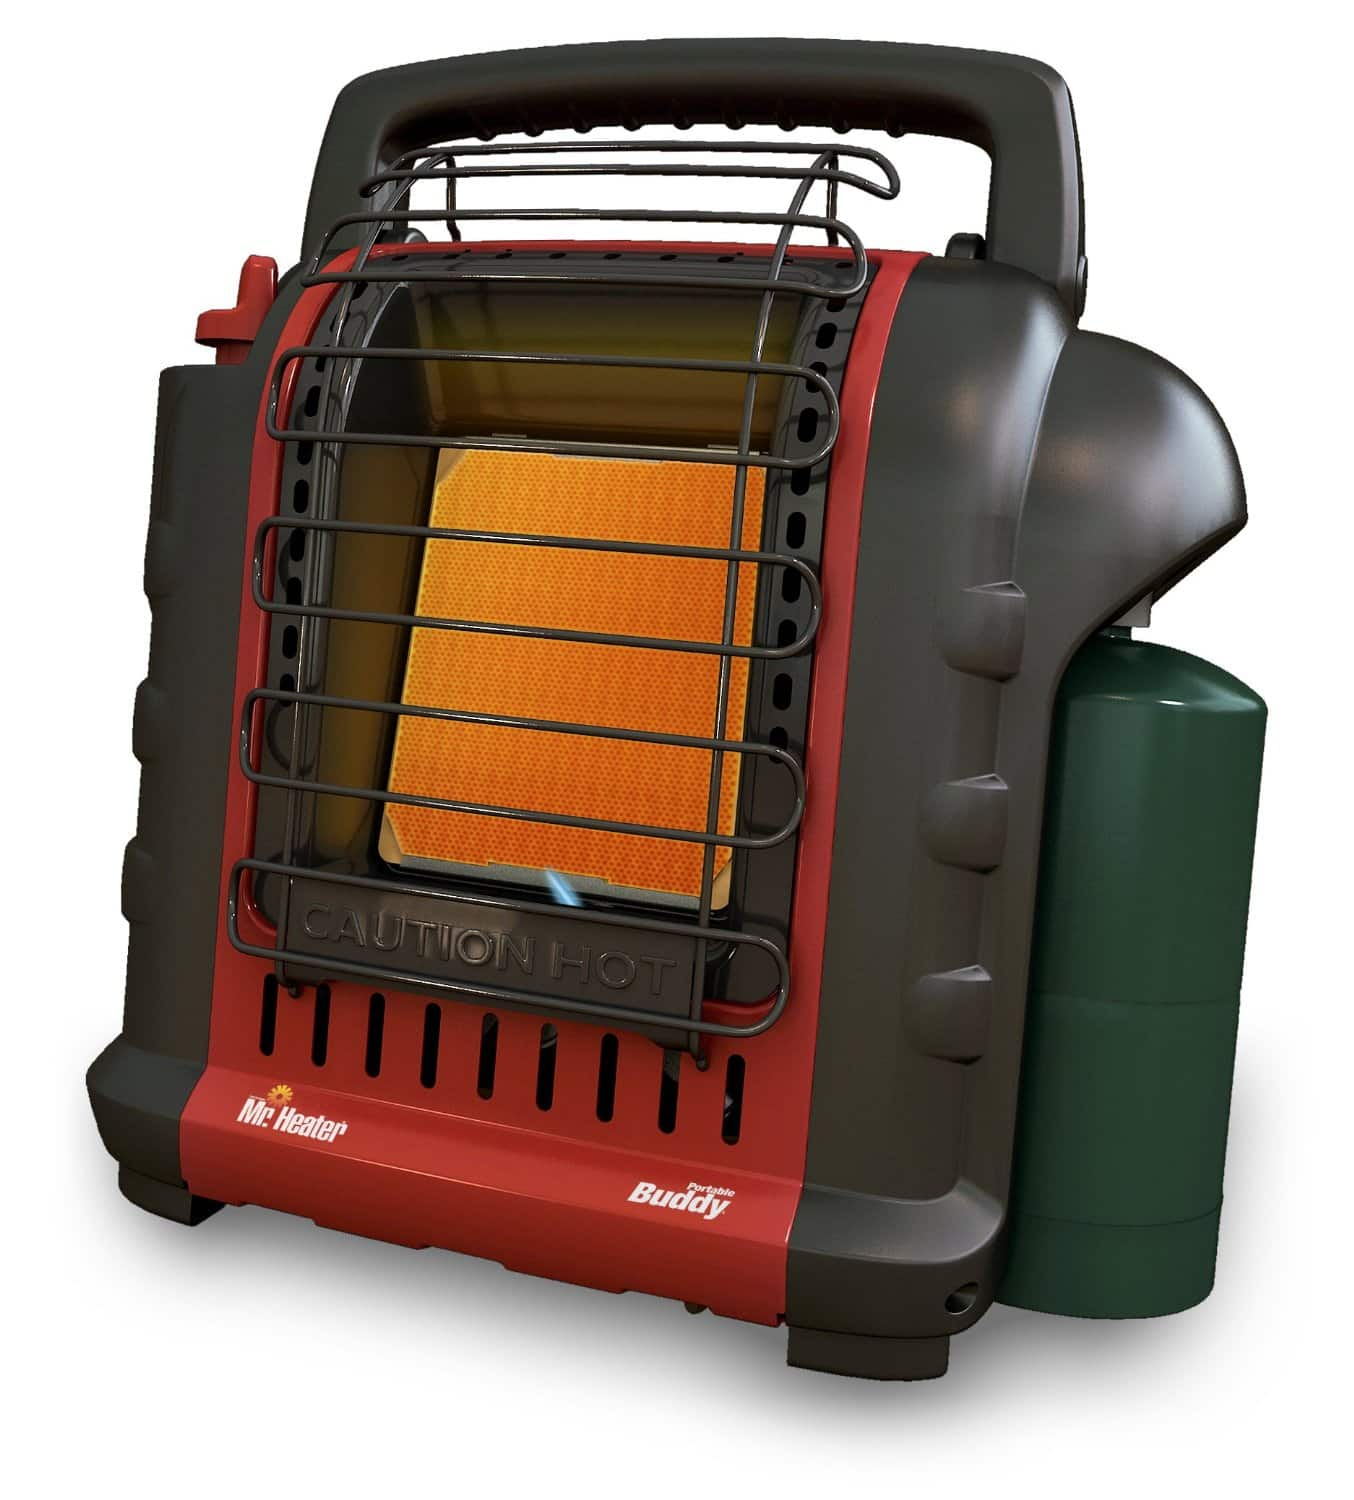 Refurbished Mr Heater Portable Buddy Free Shipping @ Cabela's for $60